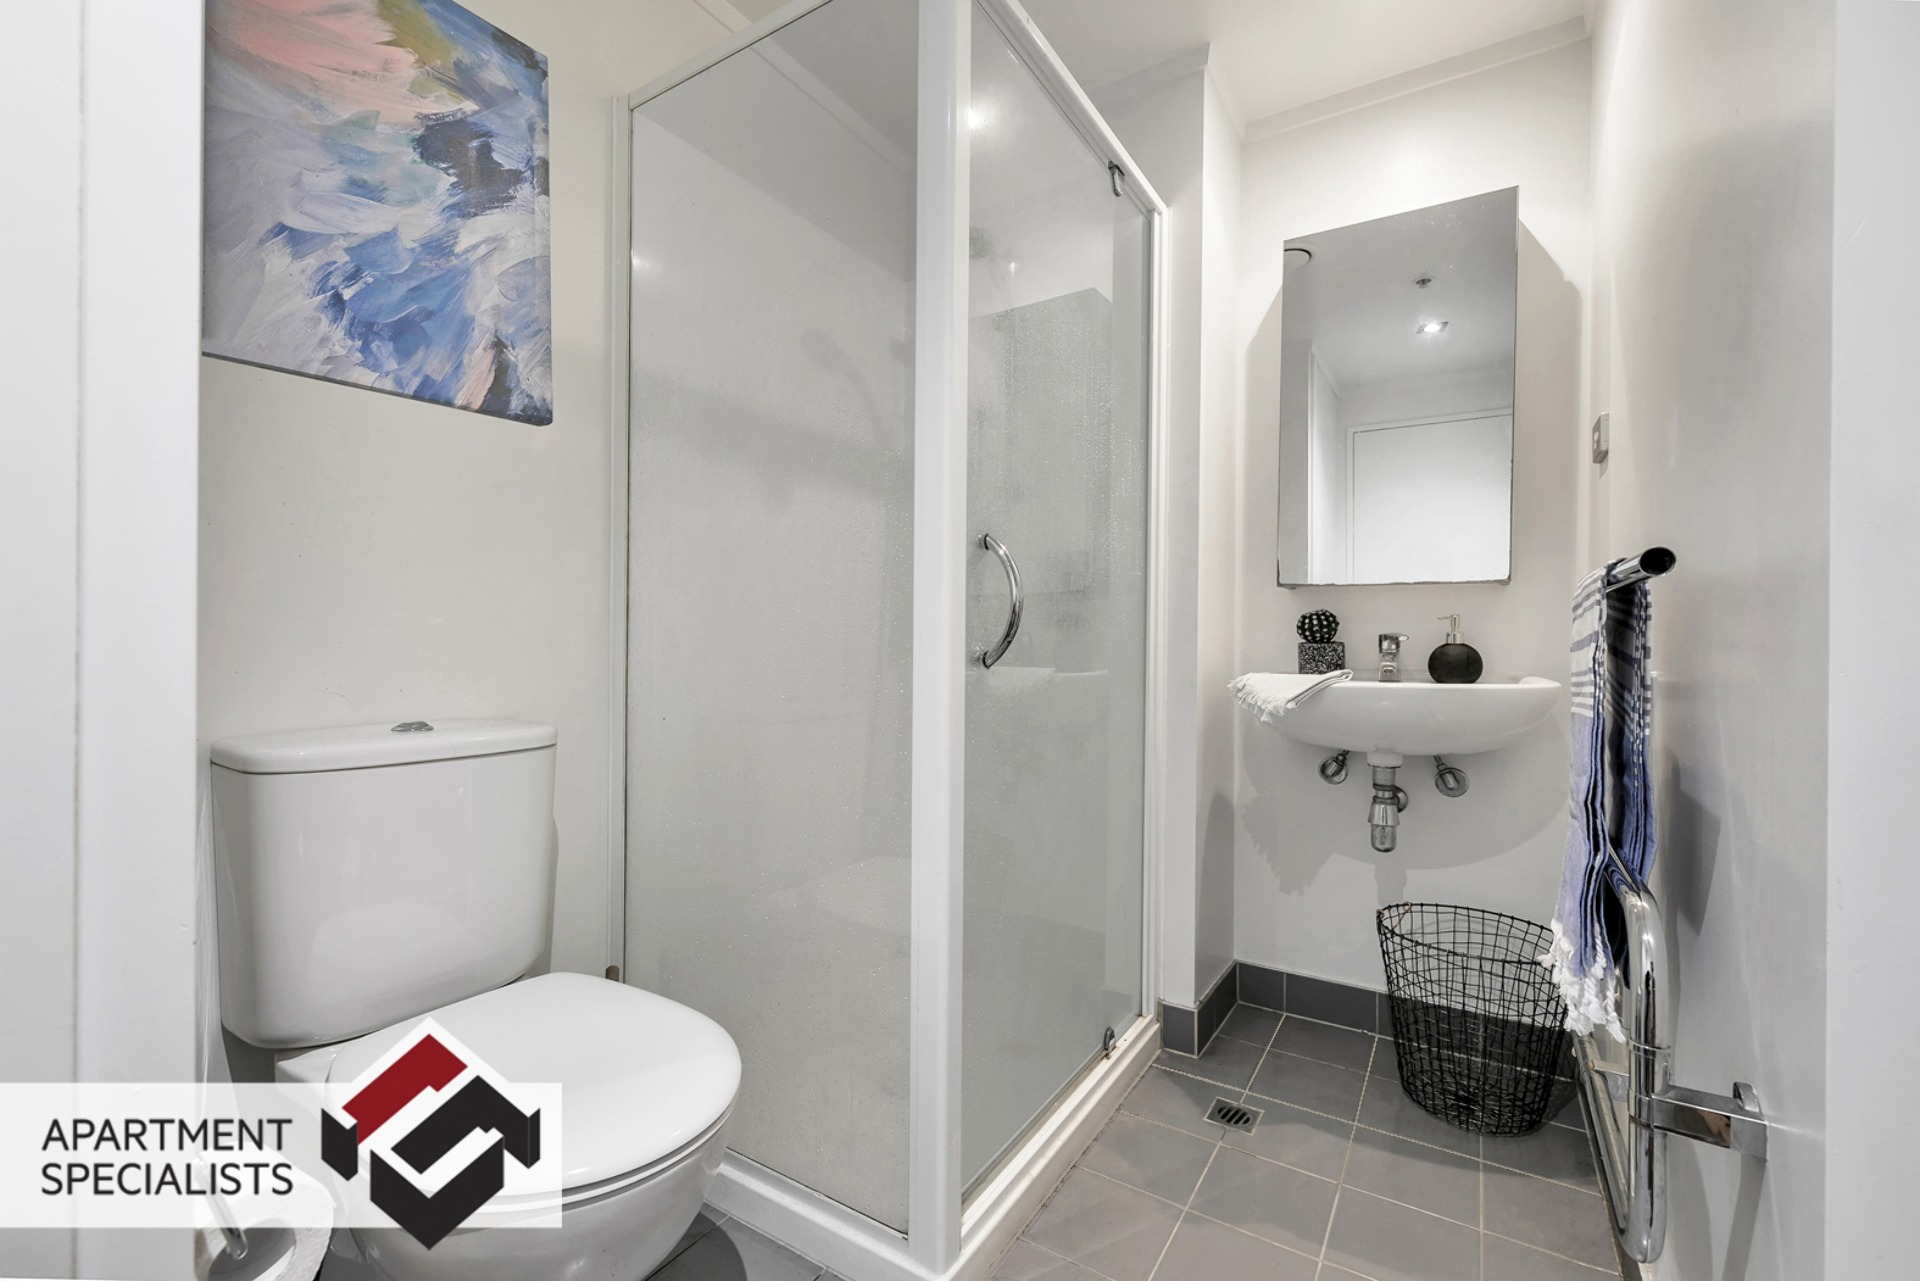 3 | 207 Federal Street, City Centre | Apartment Specialists